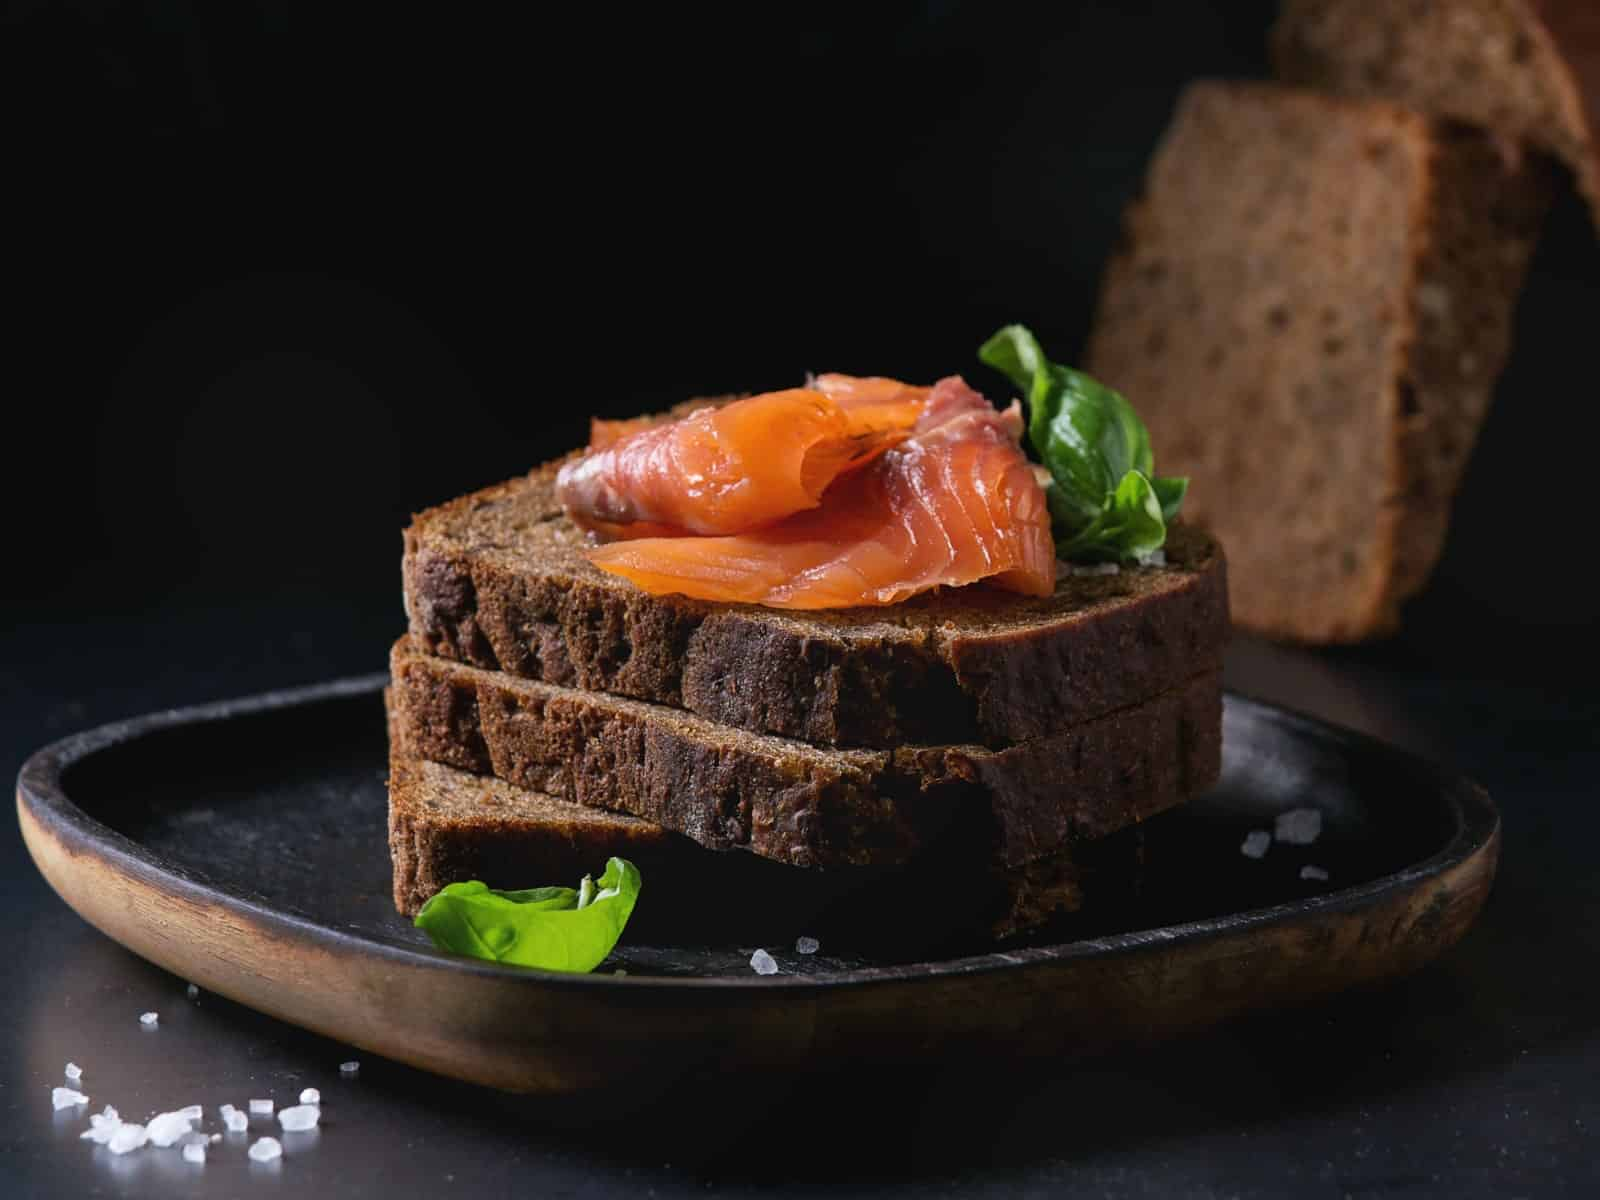 Cold plate with bread